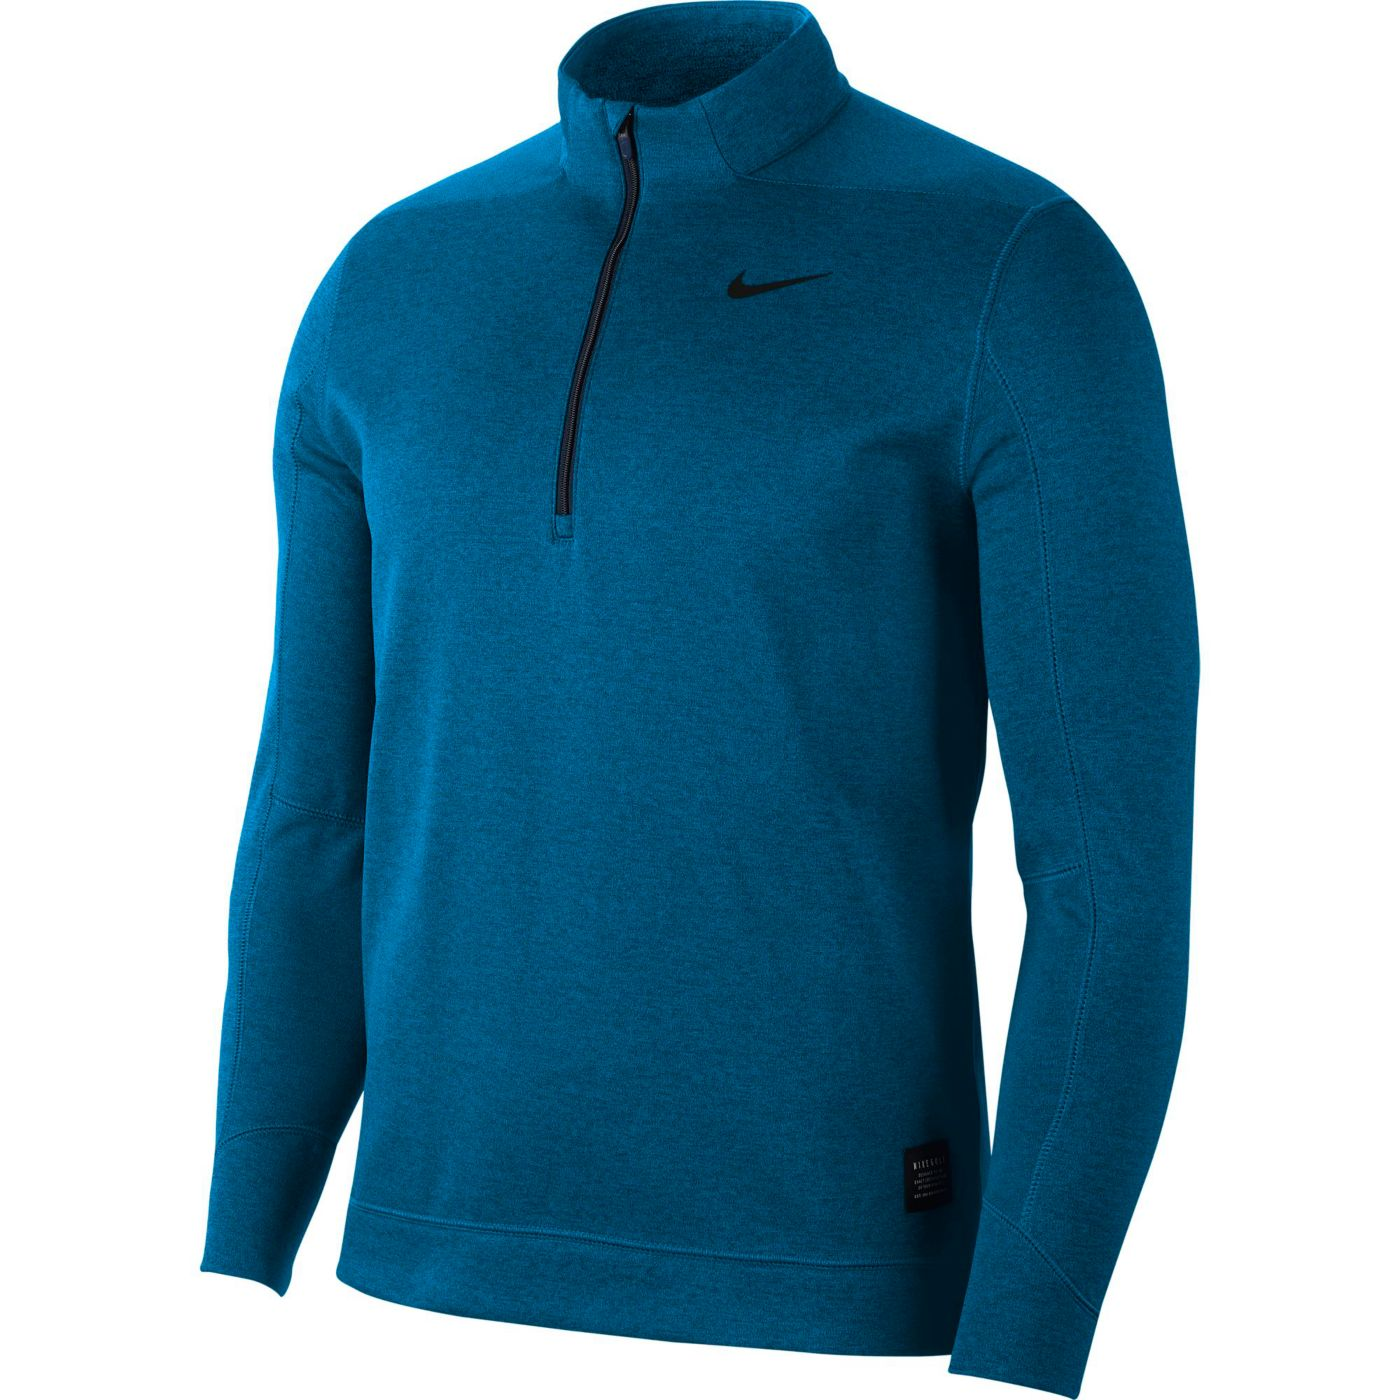 Nike Men's Therma Repel Golf ½ Zip